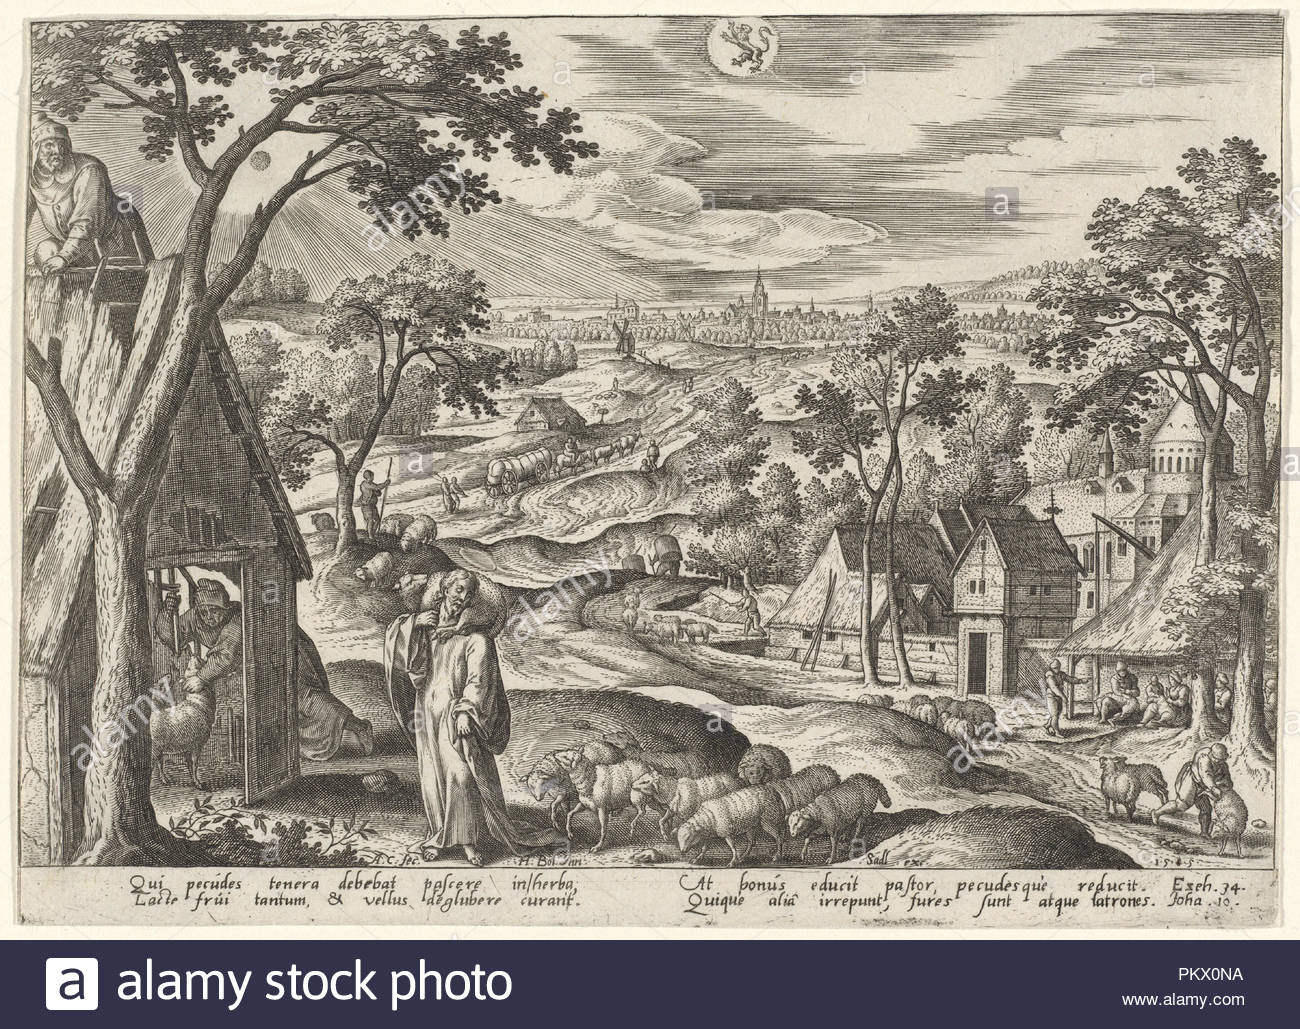 '... I am the door of the sheep' (Leo). Dated: 1585. Medium: engraving. Museum: National Gallery of Art, Washington DC. Author: Adriaen Collaert after Hans Bol. - Stock Image